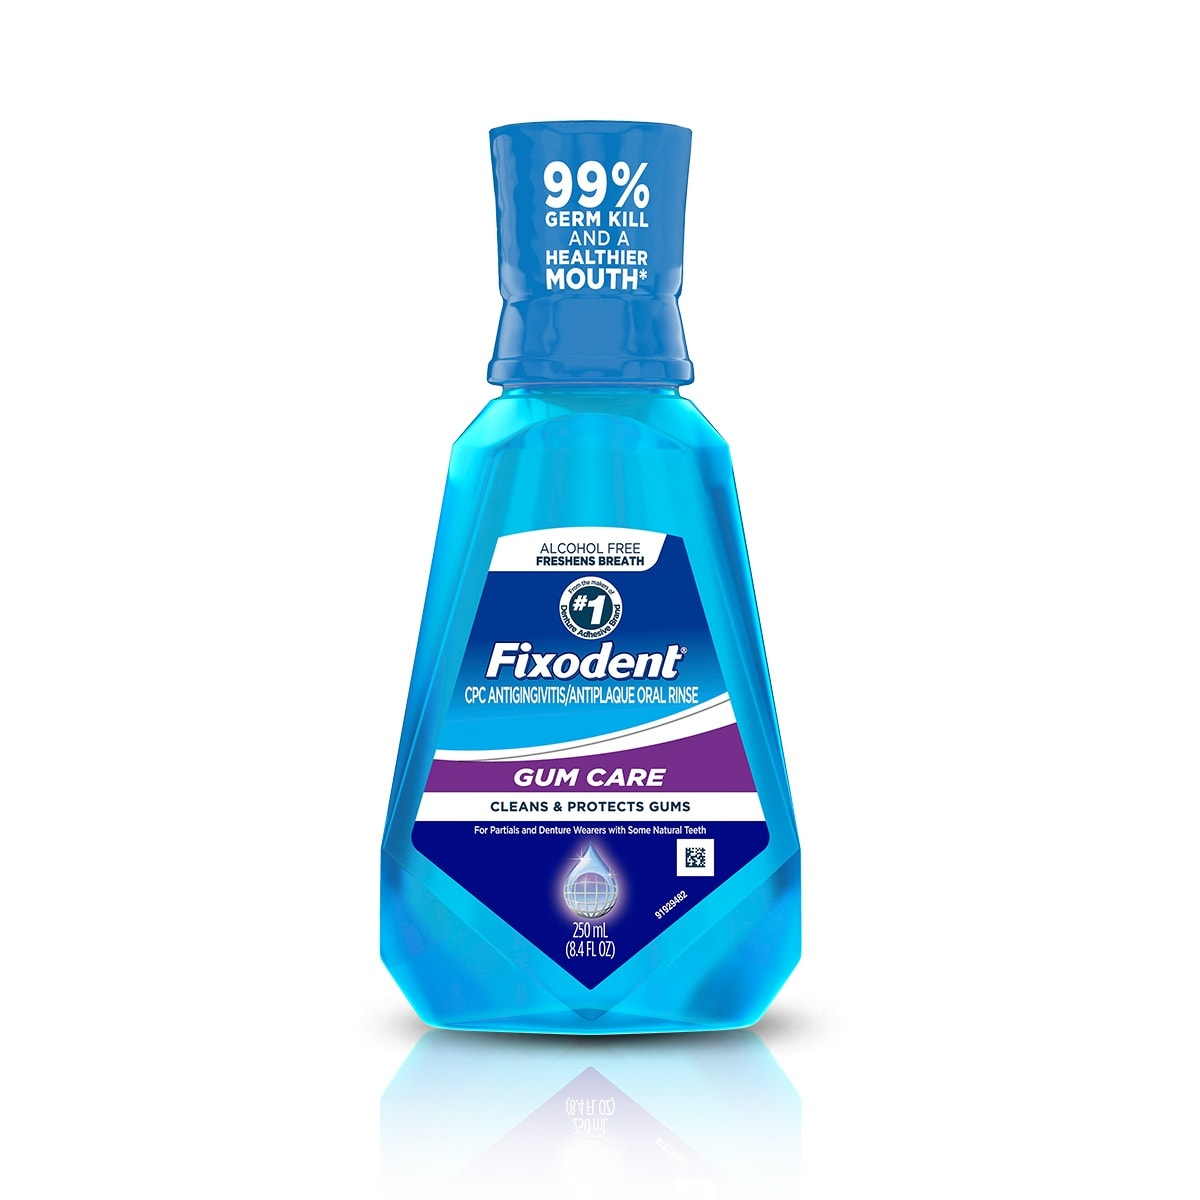 A packshot of the blue bottle of Fixodent gum care mouthwash to care and protect for gums of full and partial denture wearers.